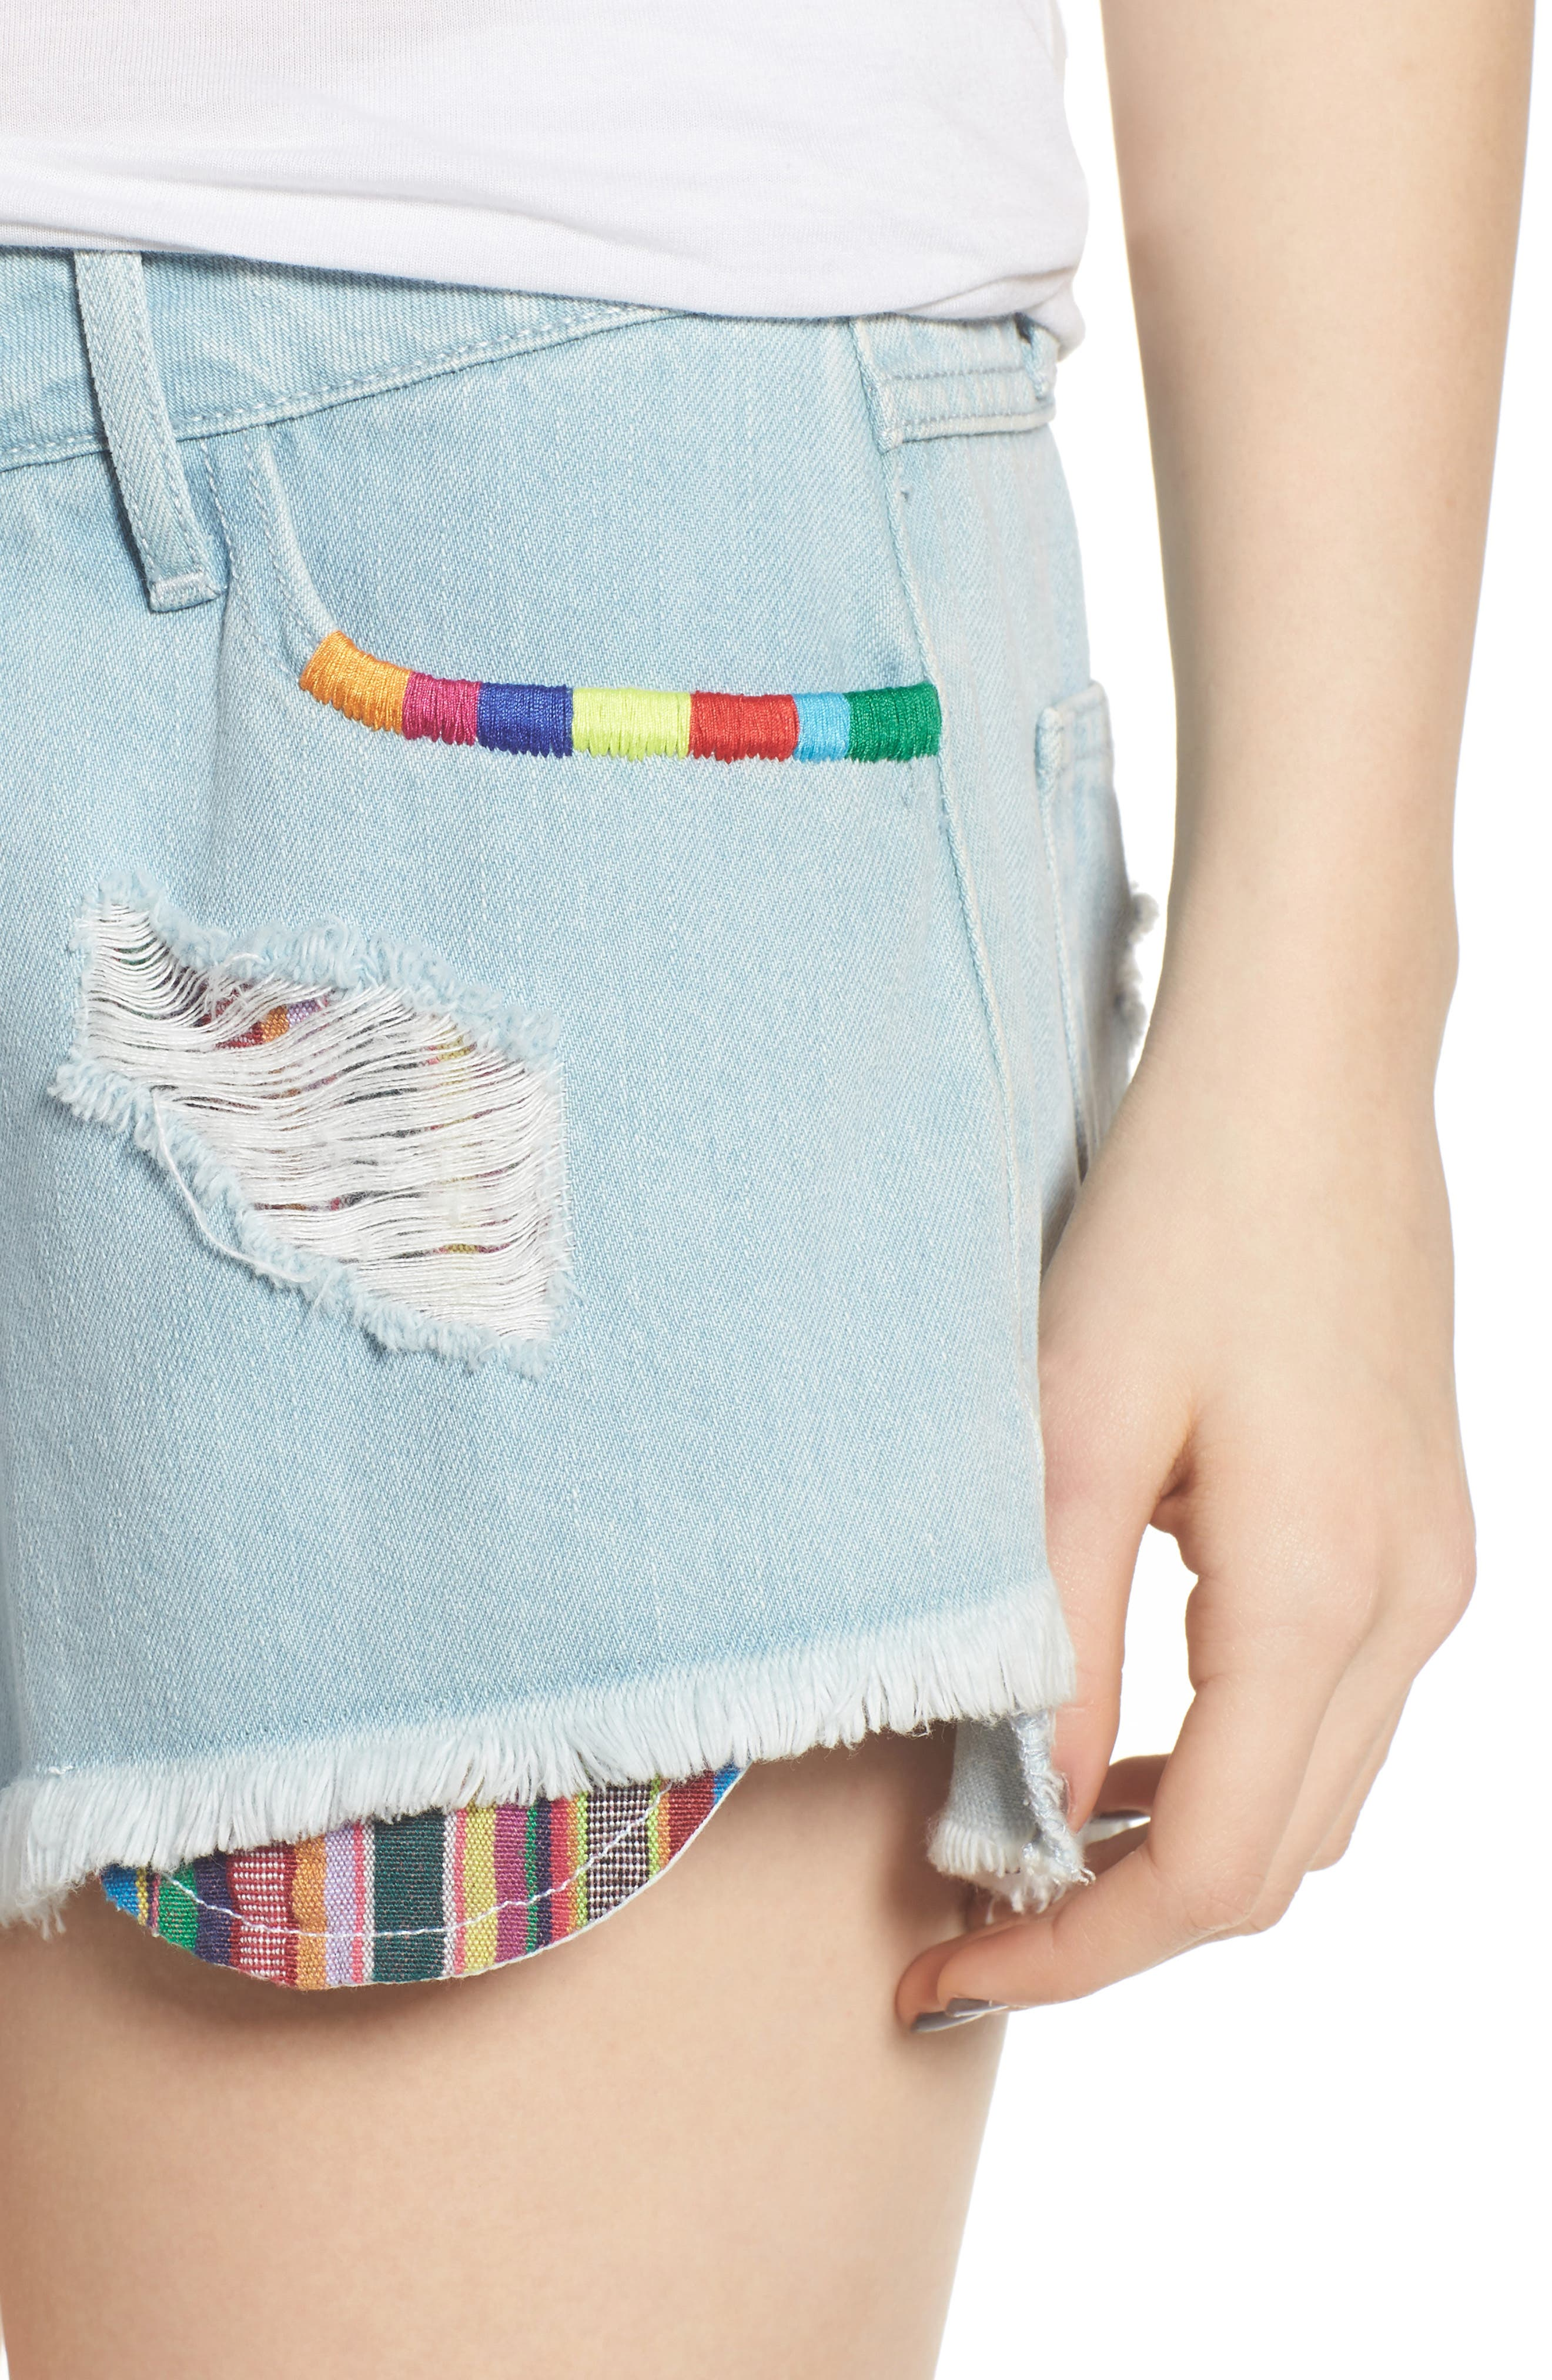 Cabo Cutoff Denim Shorts,                             Alternate thumbnail 4, color,                             400